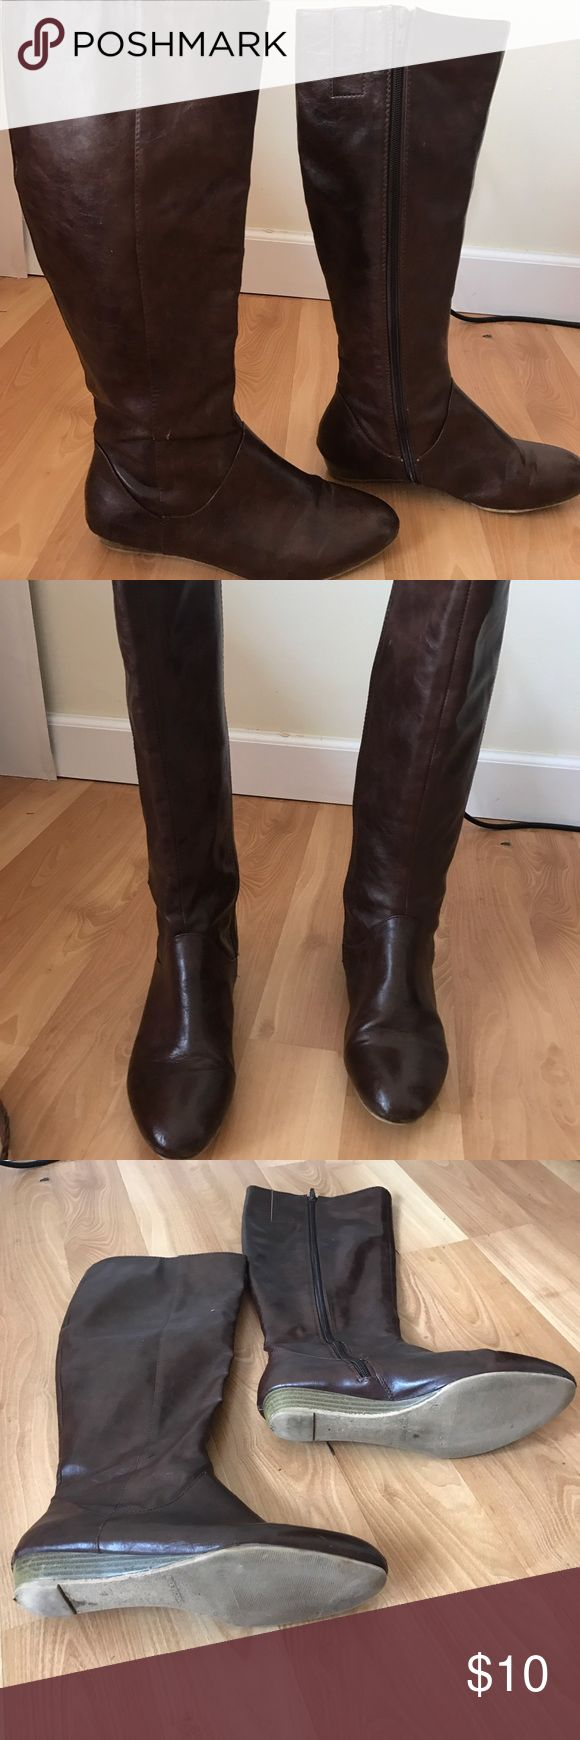 Knee high brown boots Good used condition boots from Old Navy. Size 9. Man made upper. Some wear at the toe and heel. thank you for visiting my closet!! Check out the rest of my closet for amazing 3+ 30% bundle discounts! I ship the next day. Thank you for shopping! Old Navy Shoes Winter & Rain Boots